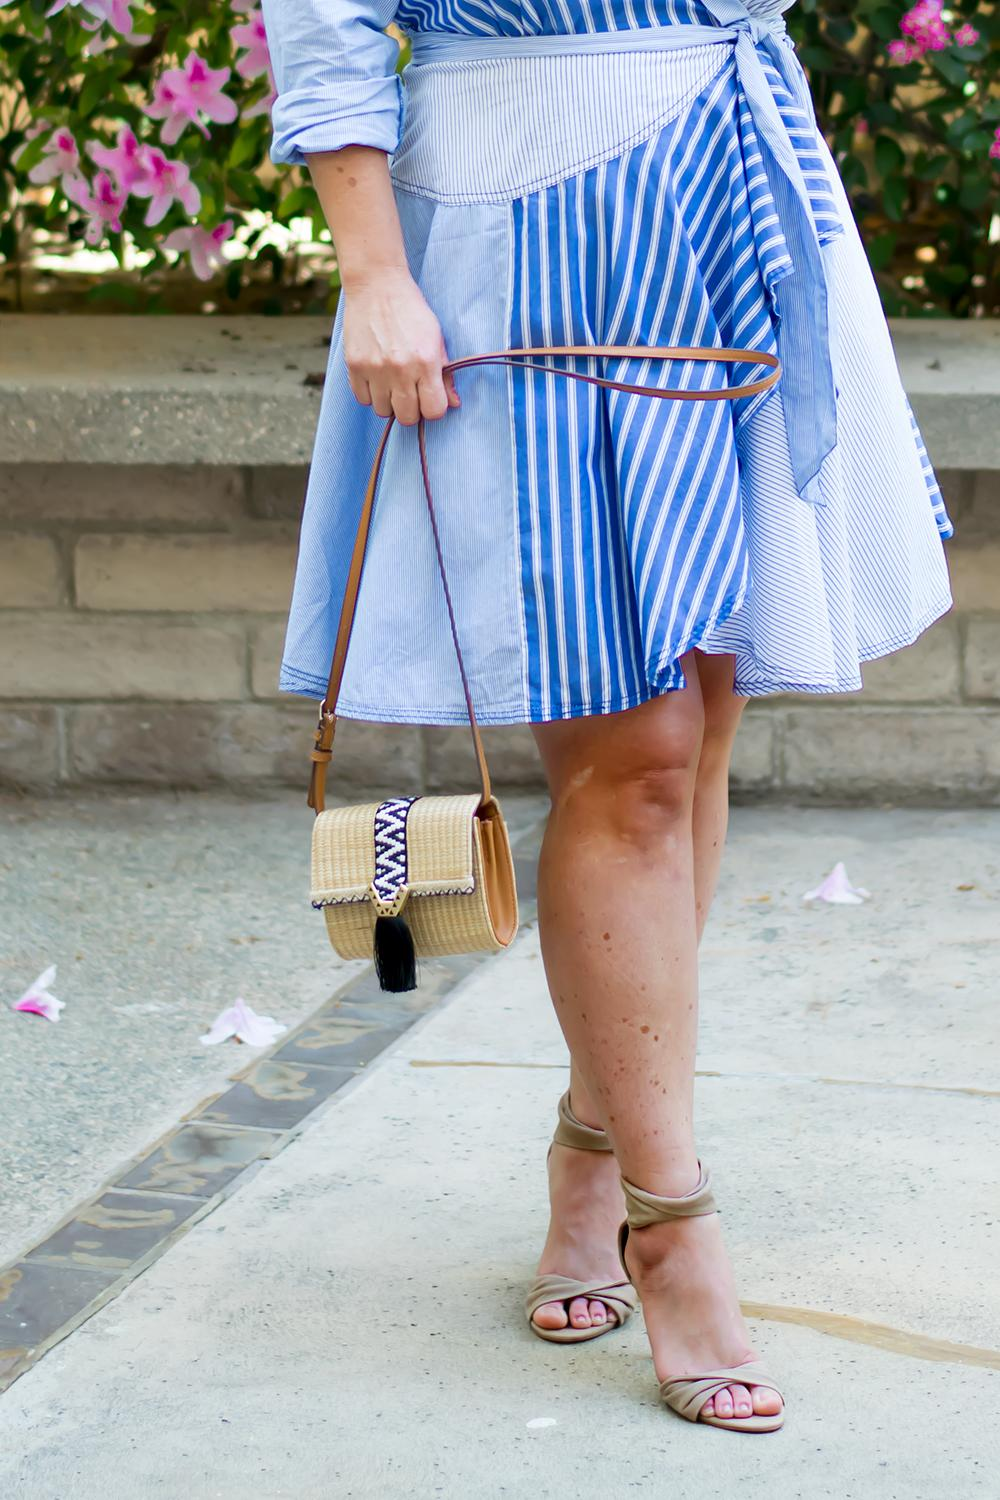 Striped-Poplin-Wrap-Dress-Street-Style-Looks-to-Copy-in-2017-Barefoot-in-LA-Fashion-Blog-Style-Ideas-Outfits_1046